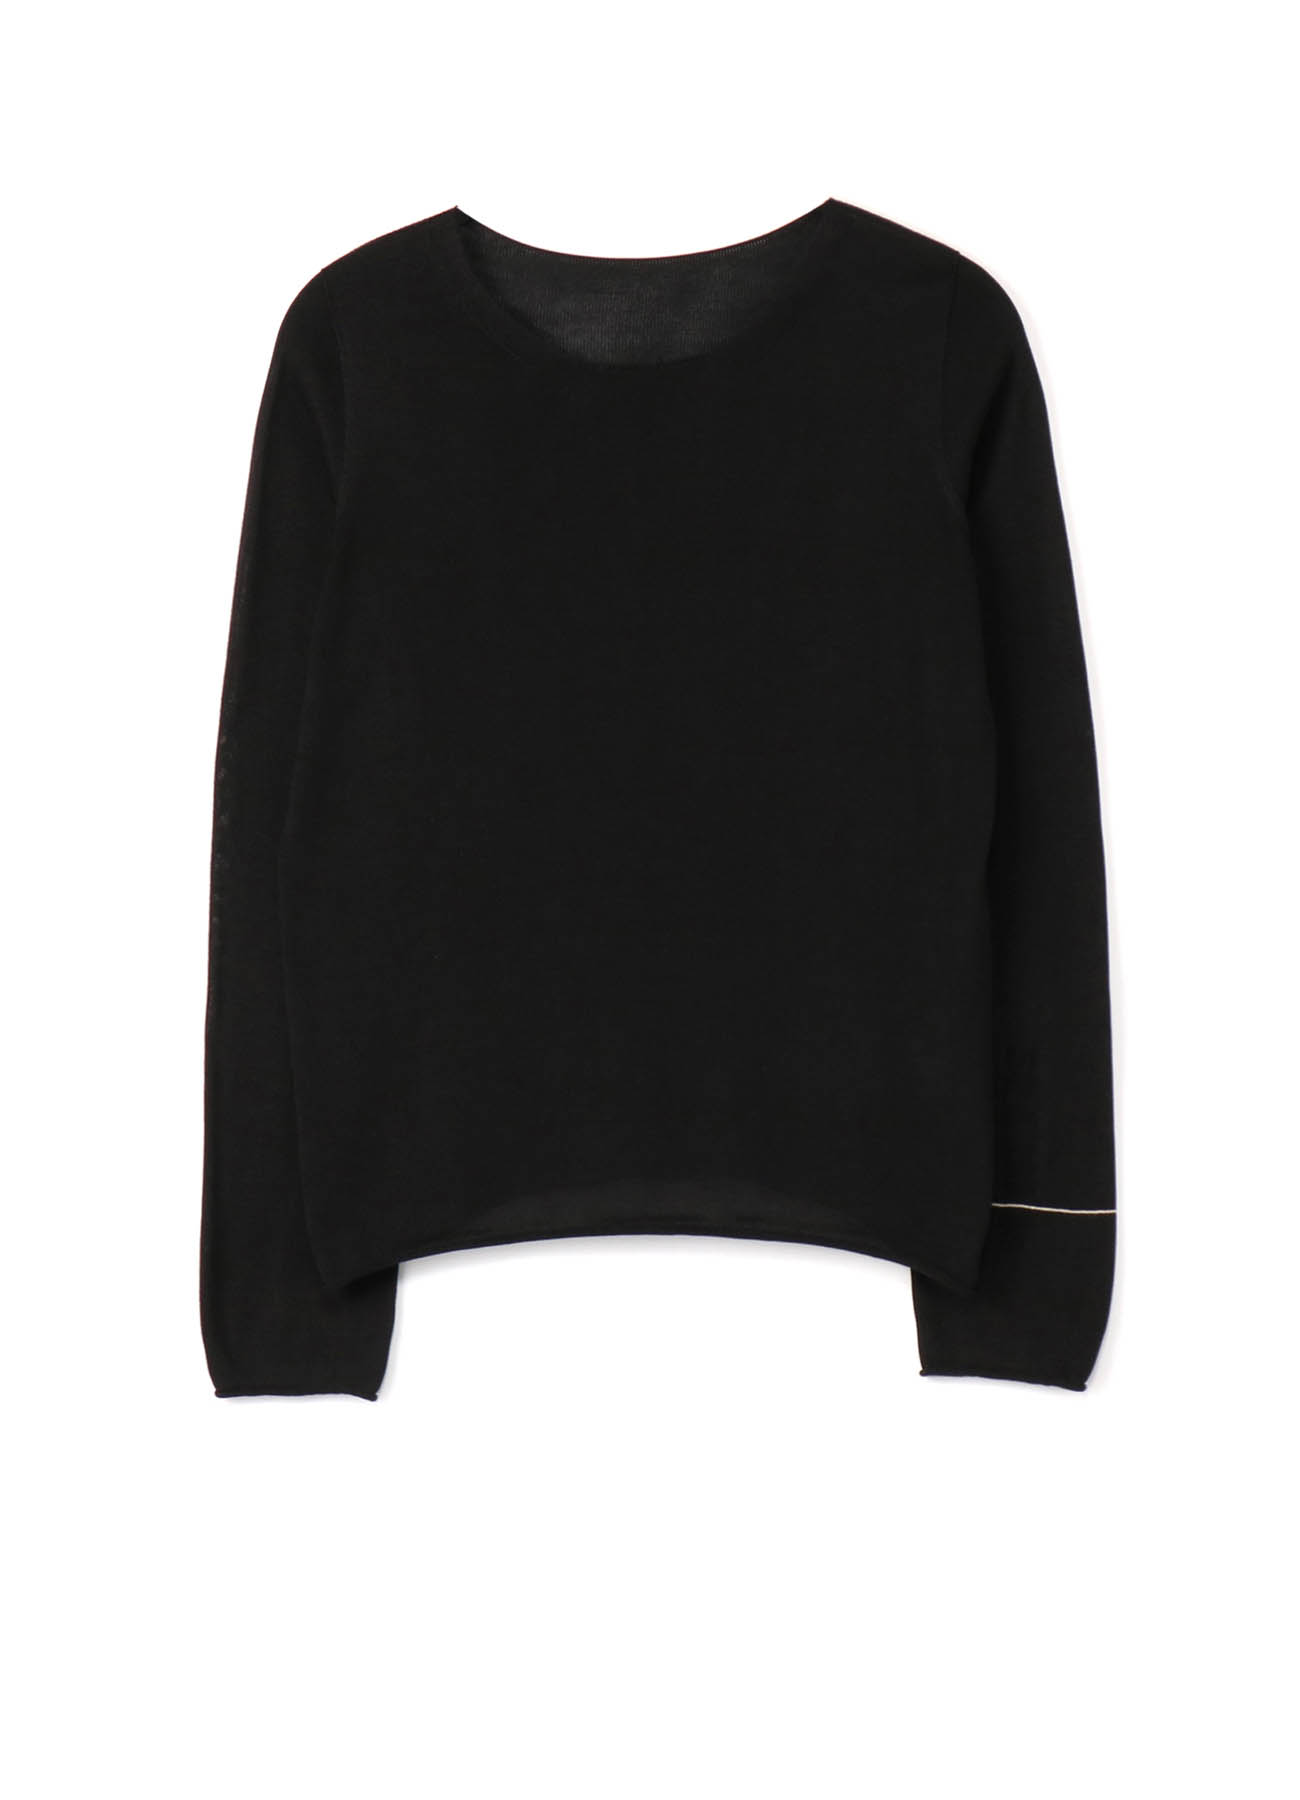 12G2P Si LINKS RN LONG SLEEVE KNIT